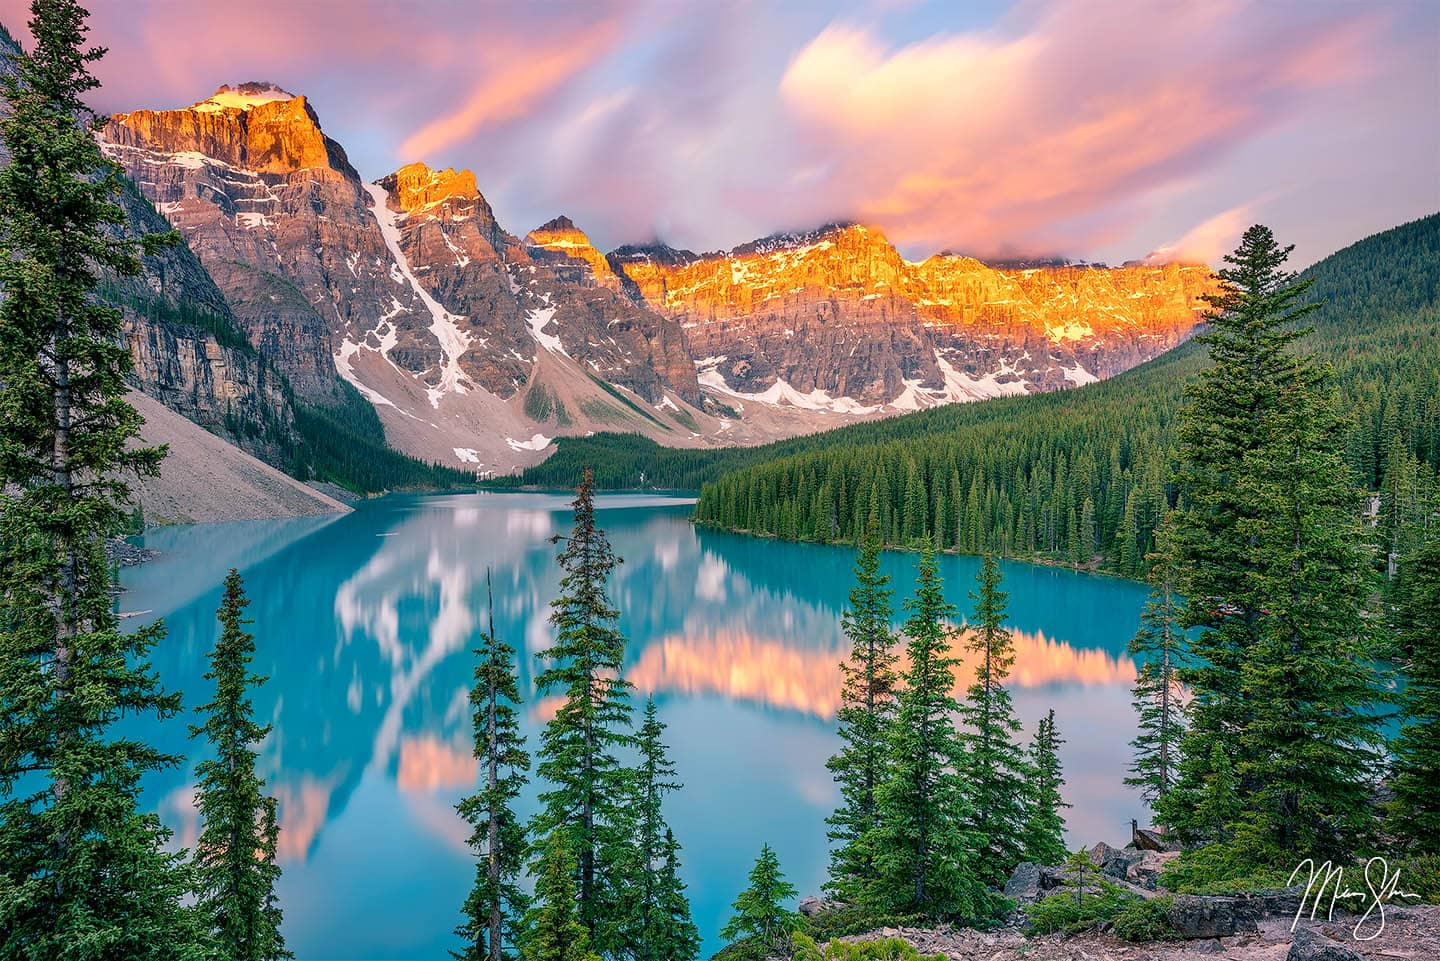 Mountain Photography: Moraine Lake at sunrise